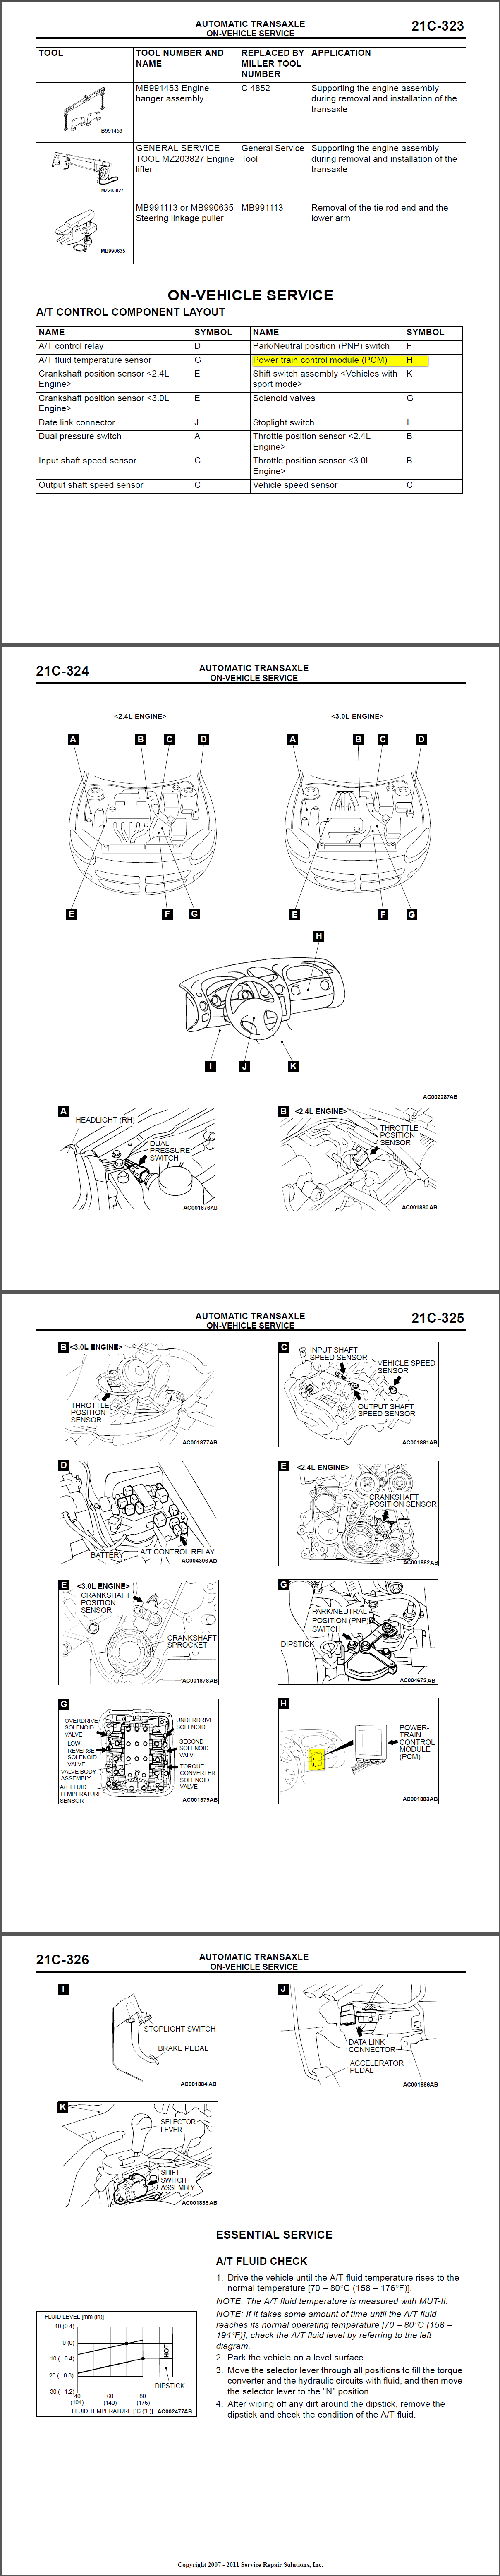 Where Is The Engine Control Computer Located On A 2001